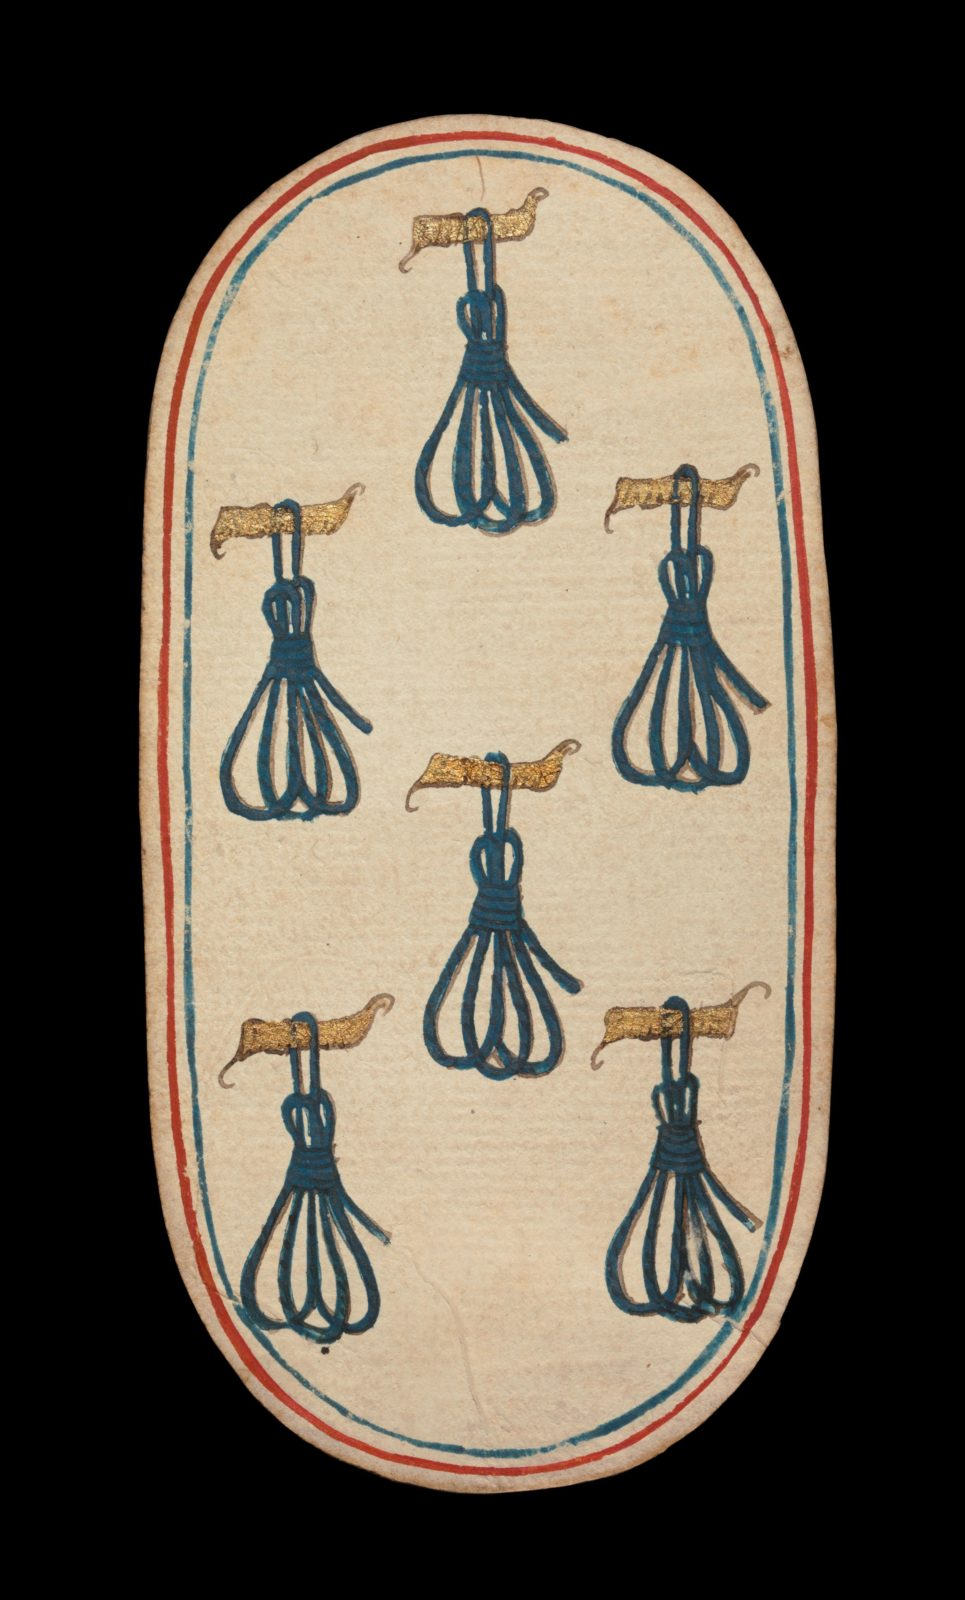 6 of Tethers, from The Cloisters Playing Cards